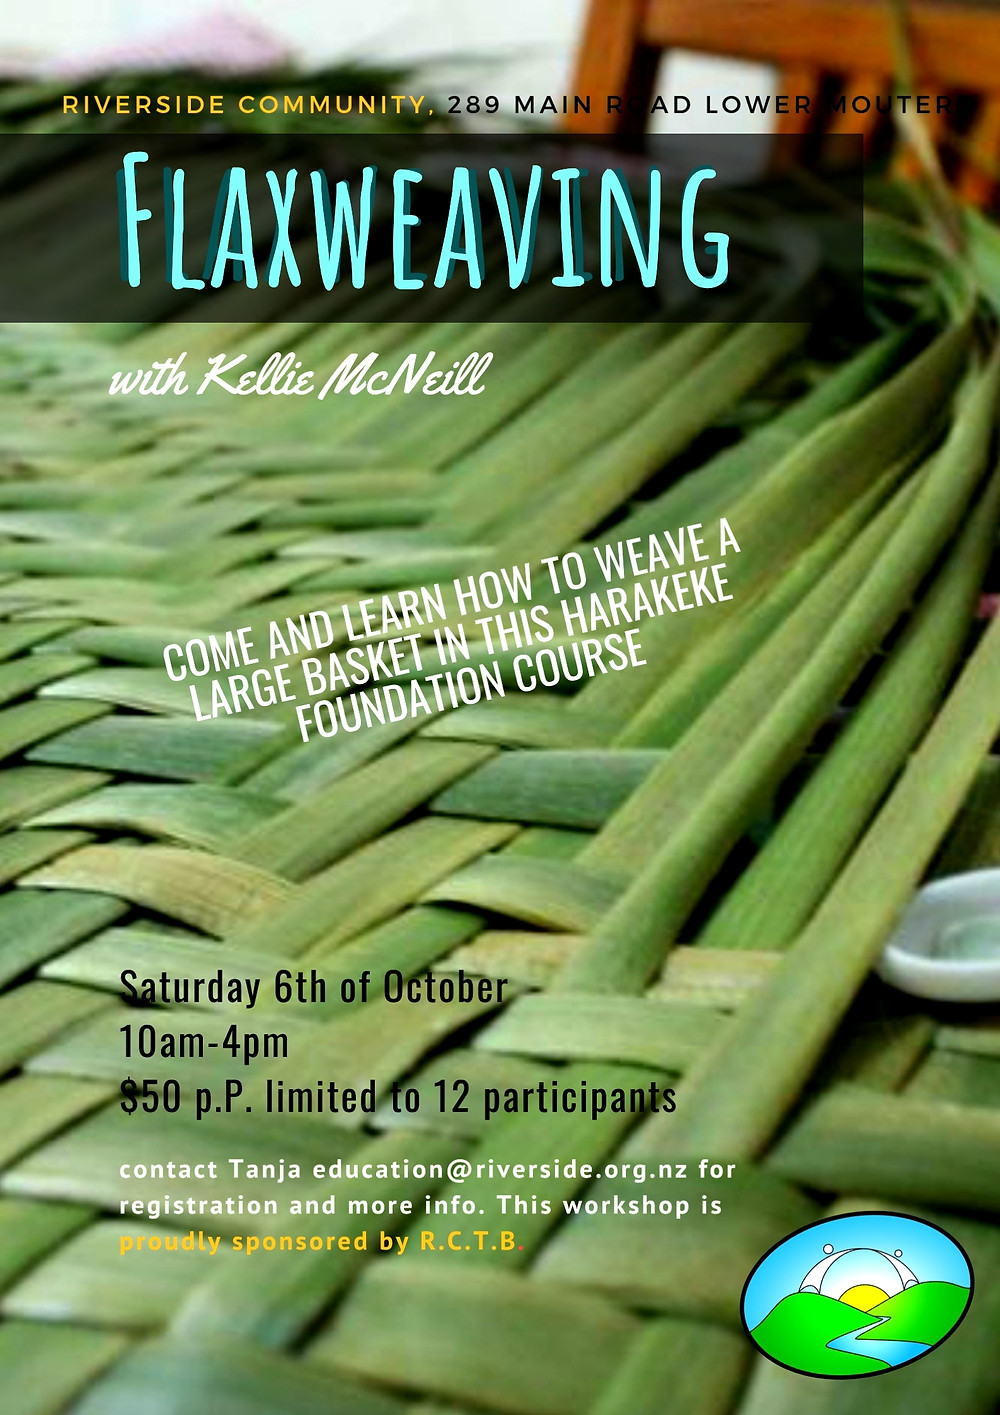 Flax Weaving at Riverside Poster